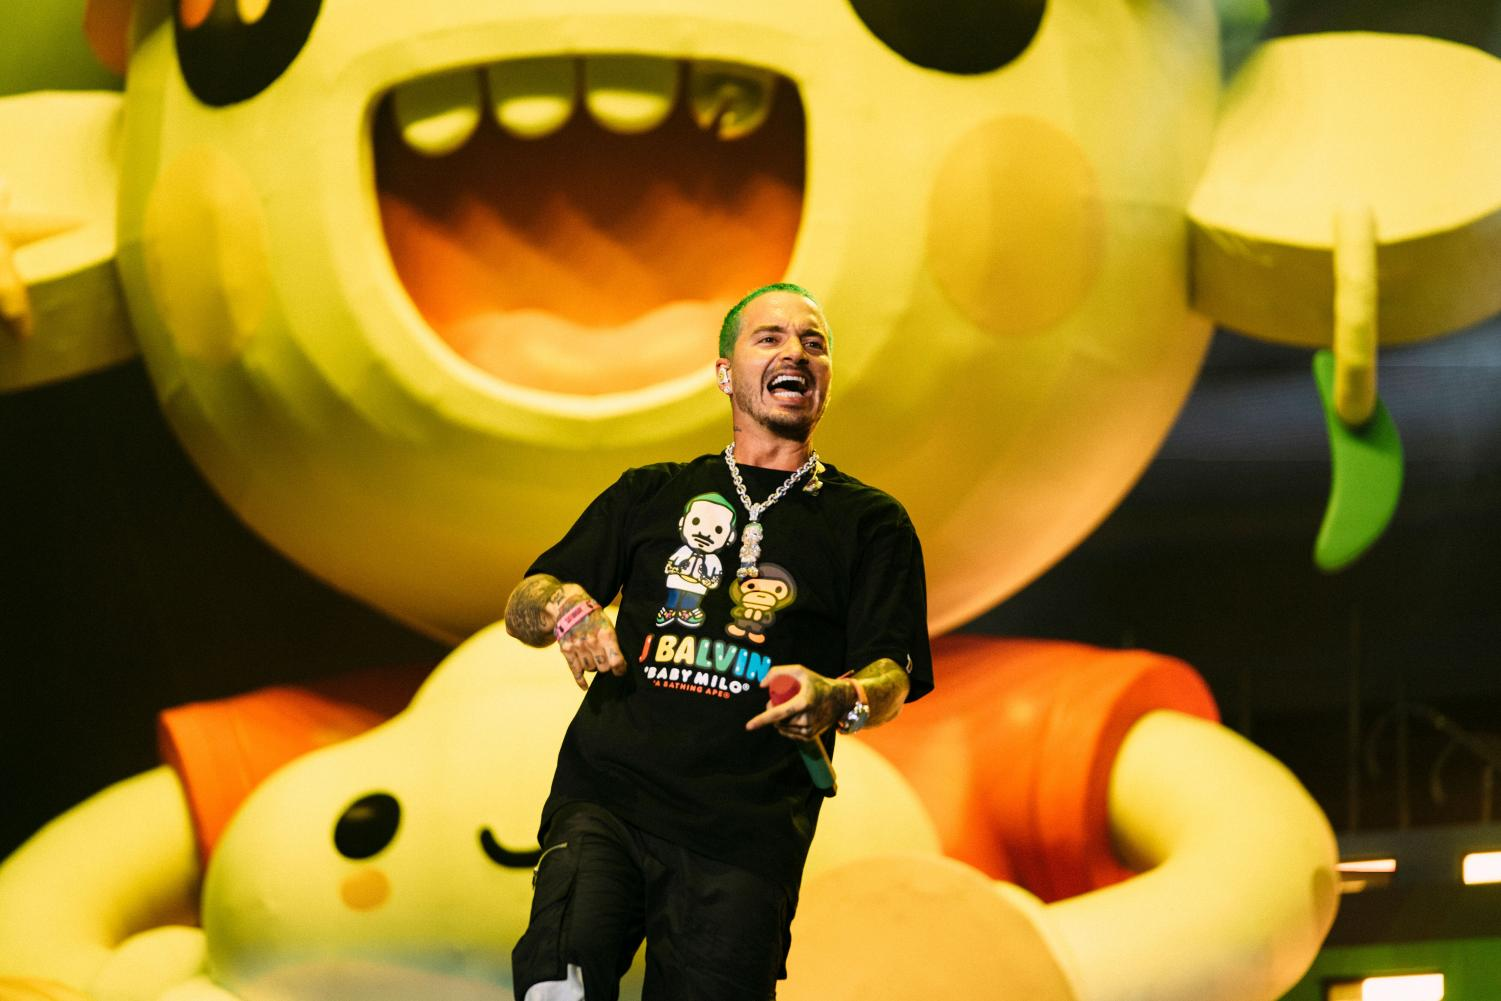 J Balvin made history as Lollapalooza's first Latinx headliner, and his energetic, flamboyant set did not disappoint.